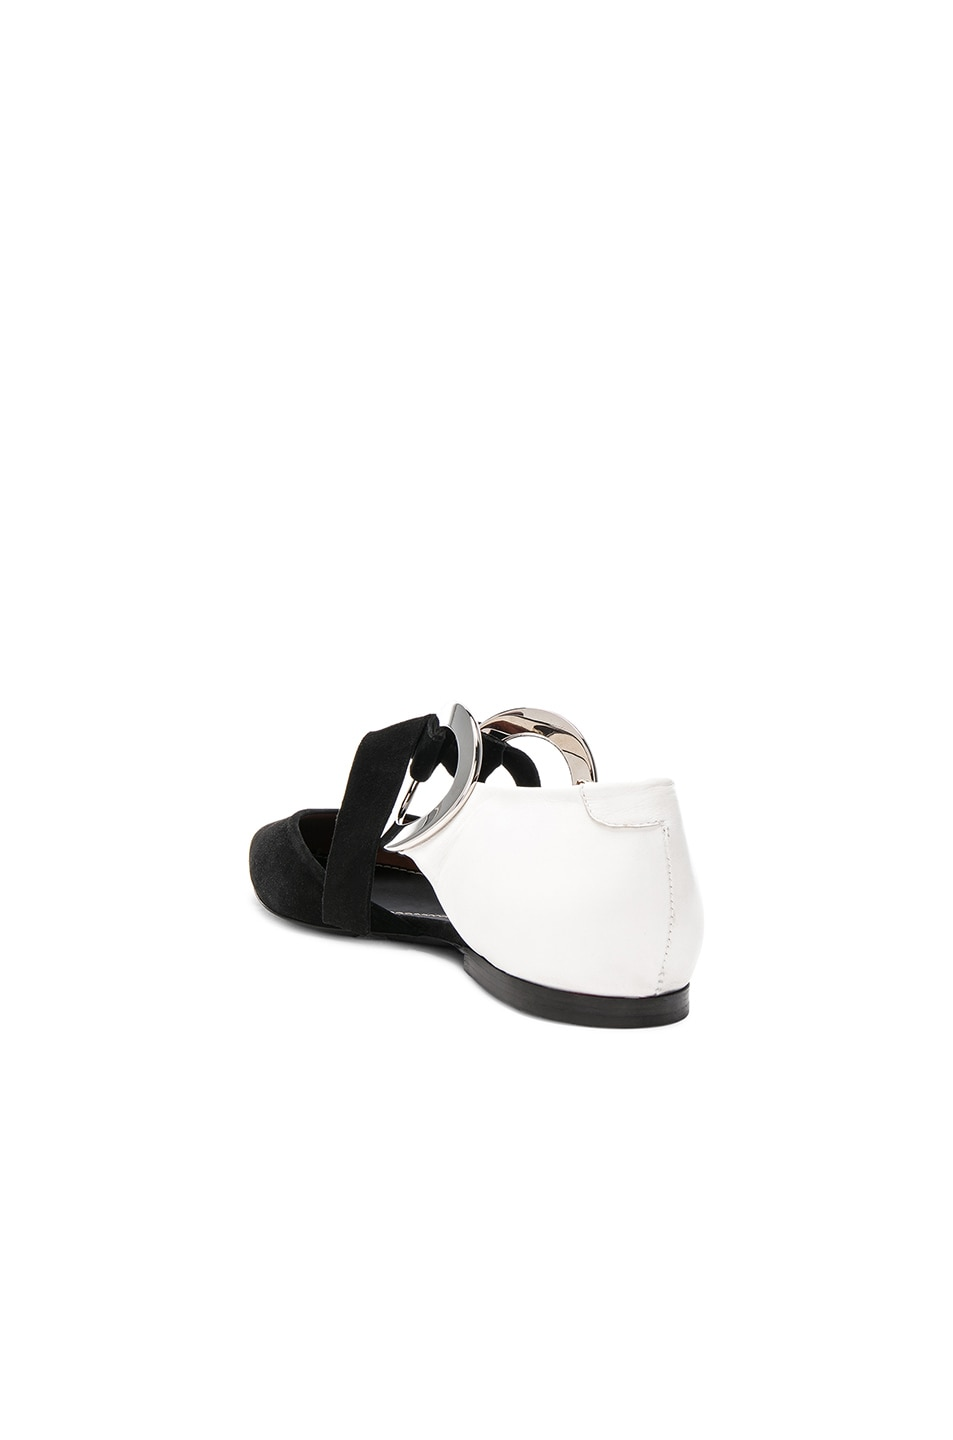 Image 3 of Proenza Schouler Suede Ankle Tie Flats in Black & White